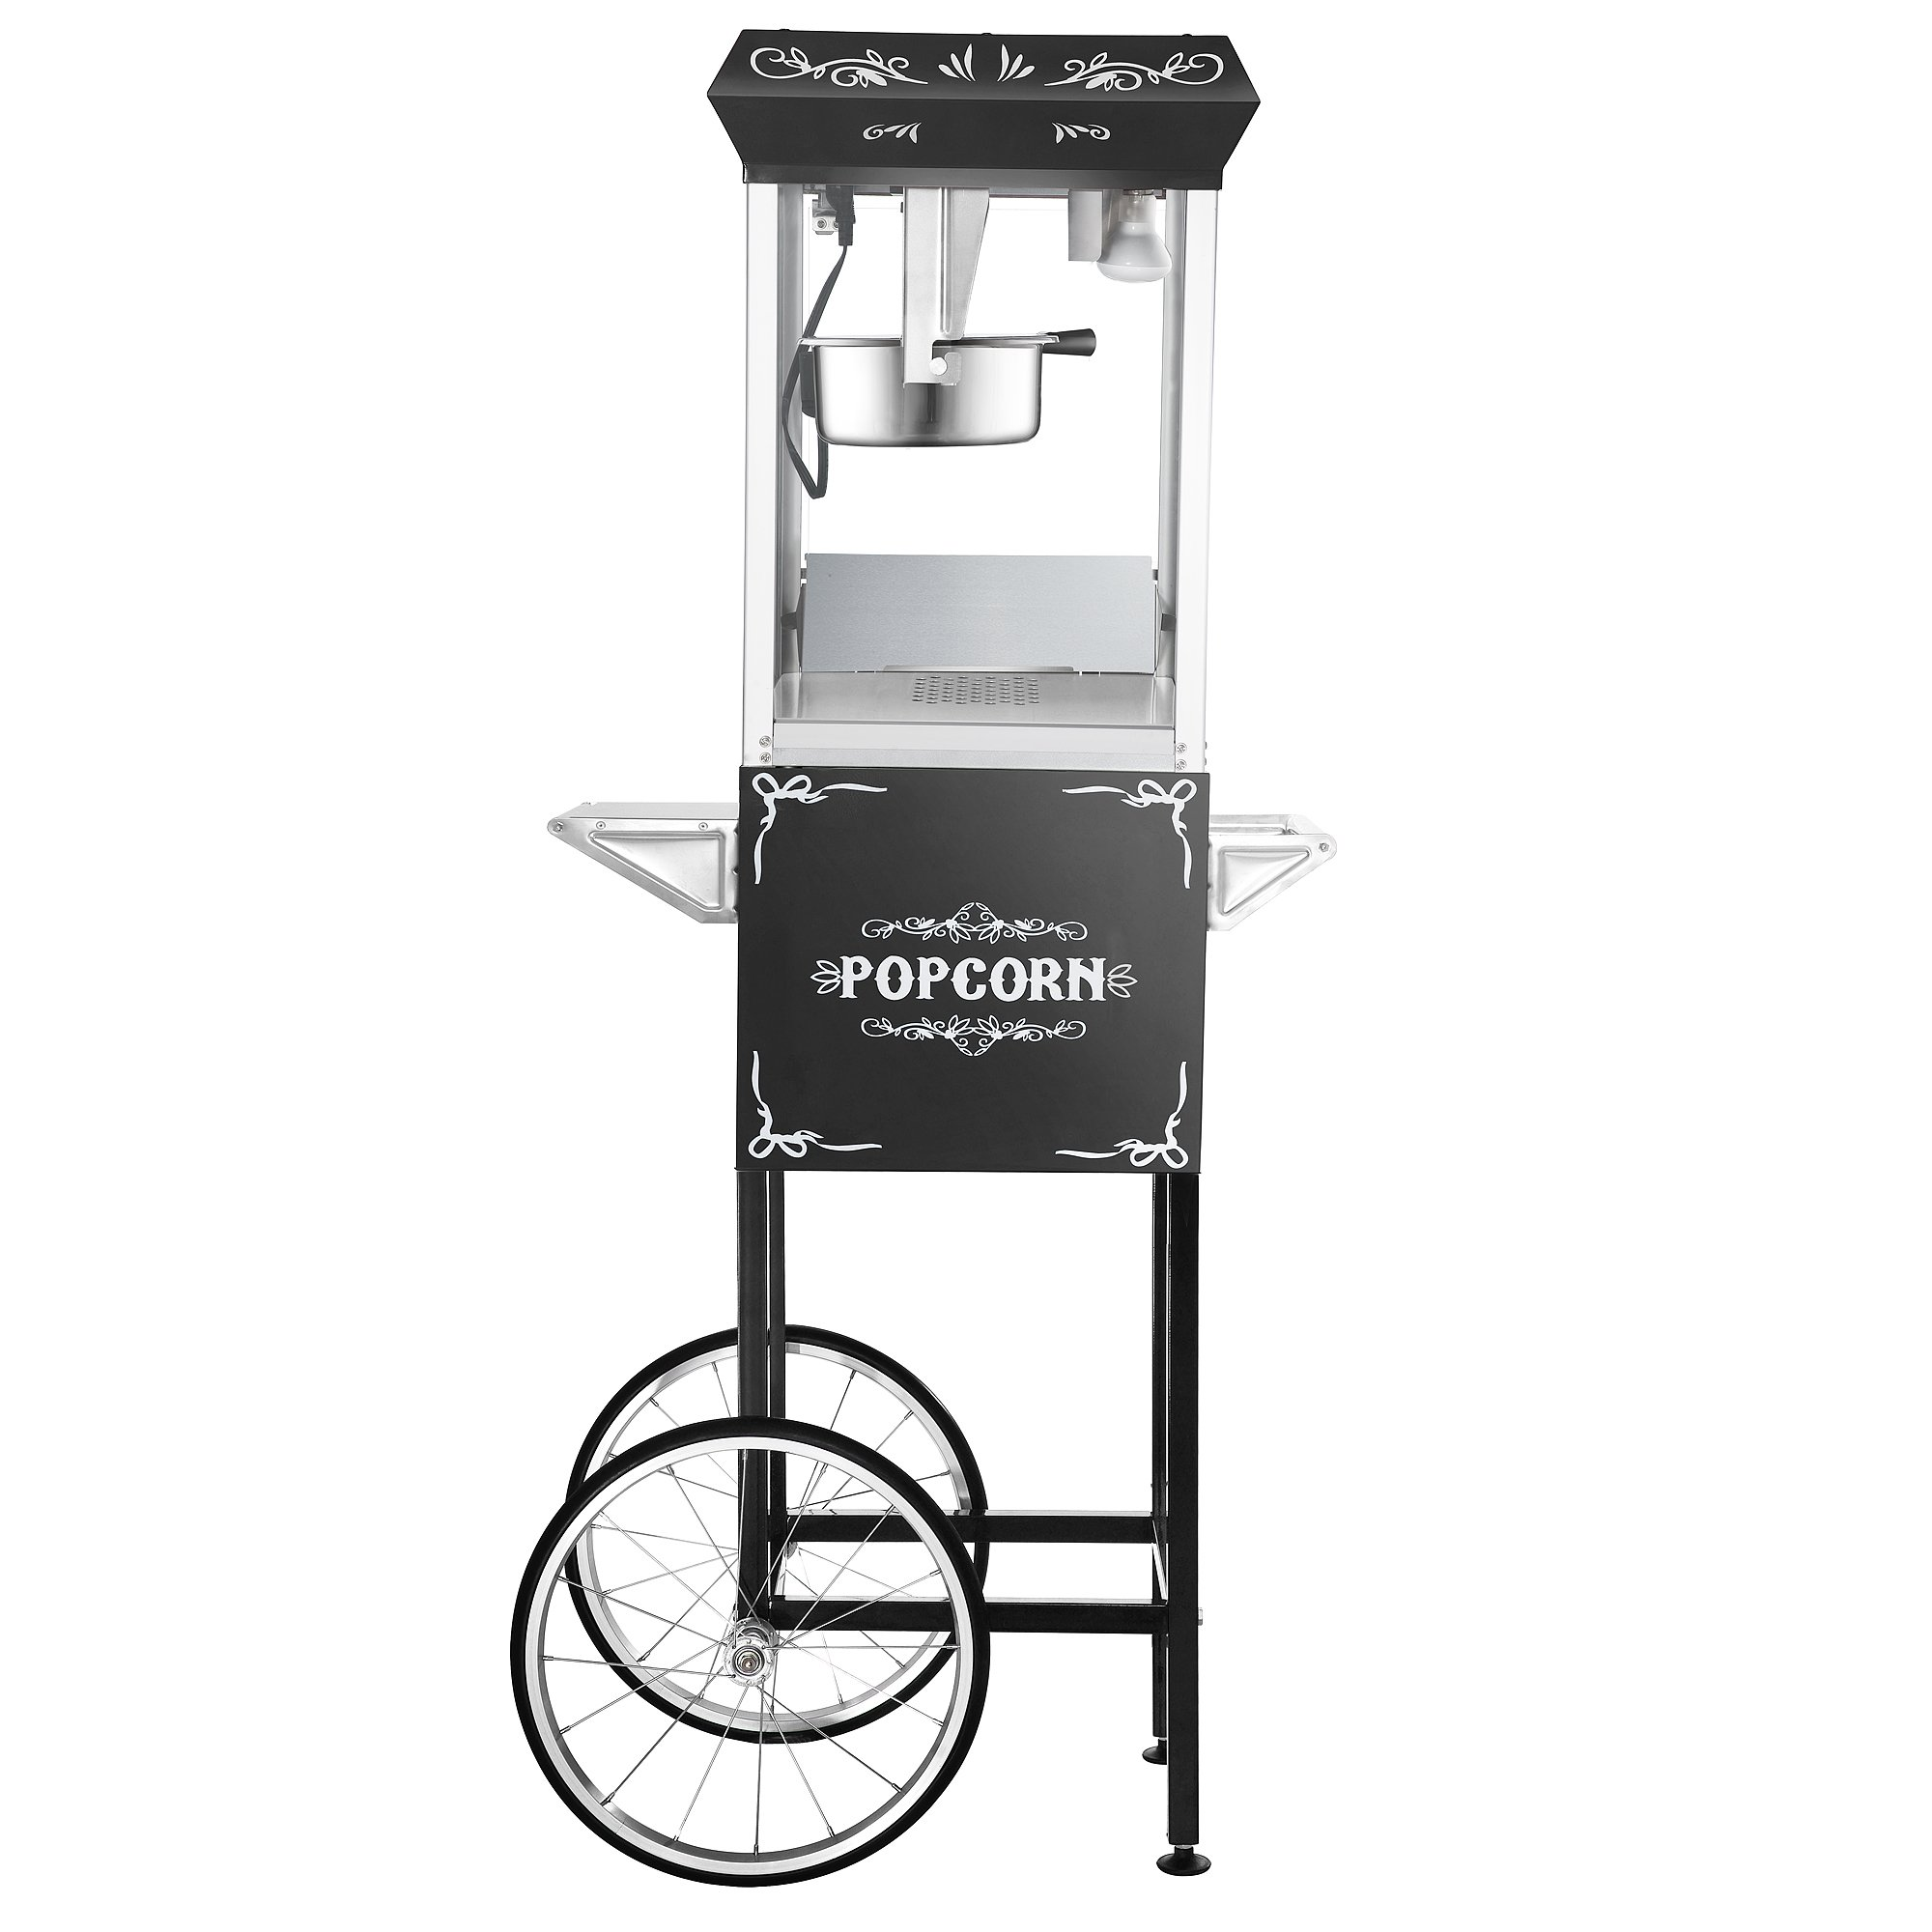 Great Northern Popcorn Black 8 oz. Ounce Foundation Vintage Style Popcorn Machine and Cart by Great Northern Popcorn Company (Image #9)